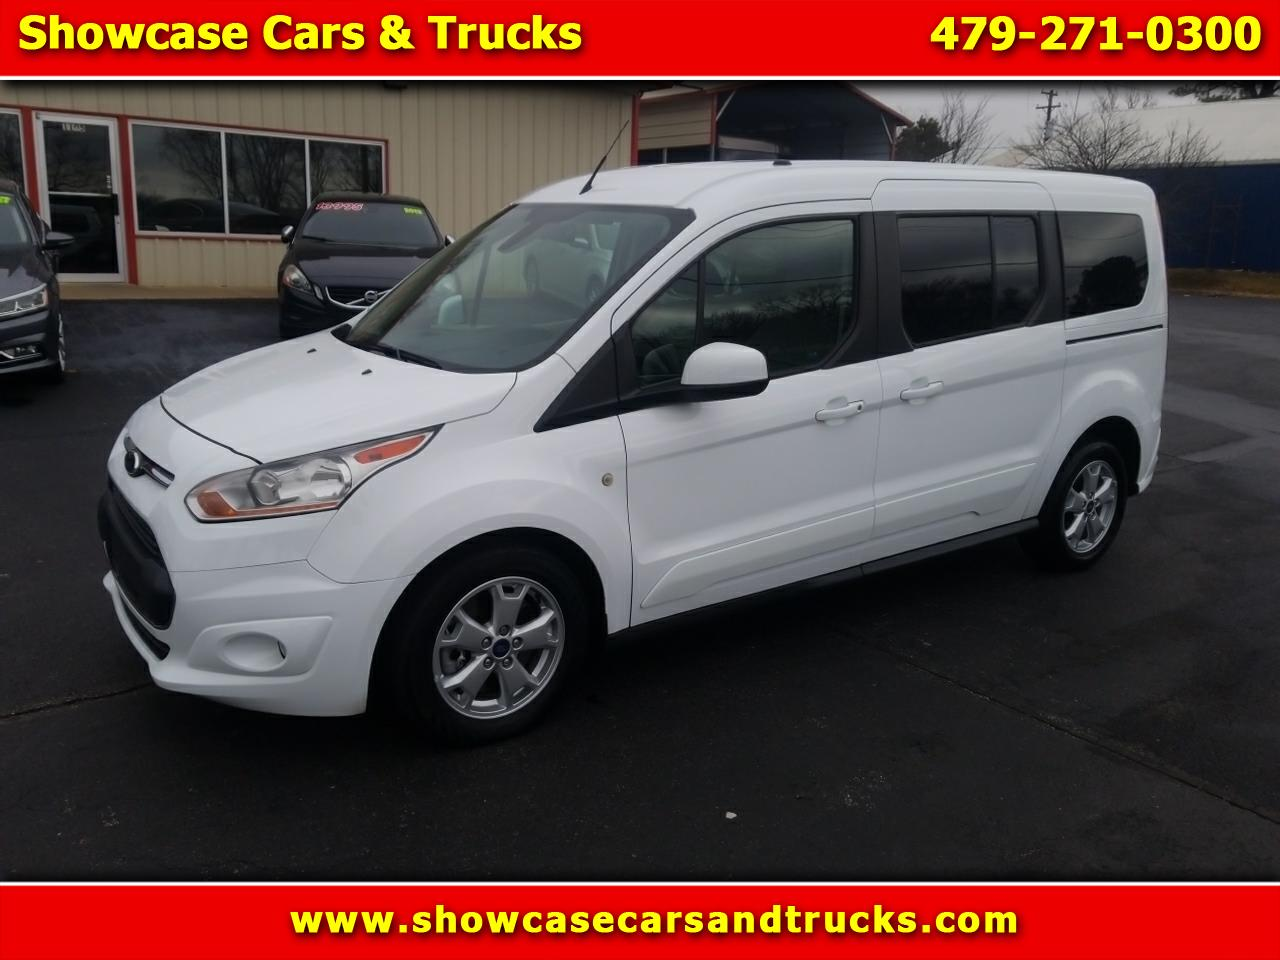 2014 Ford Transit Connect Wagon 4dr Wgn LWB Titanium w/Rear Liftgate